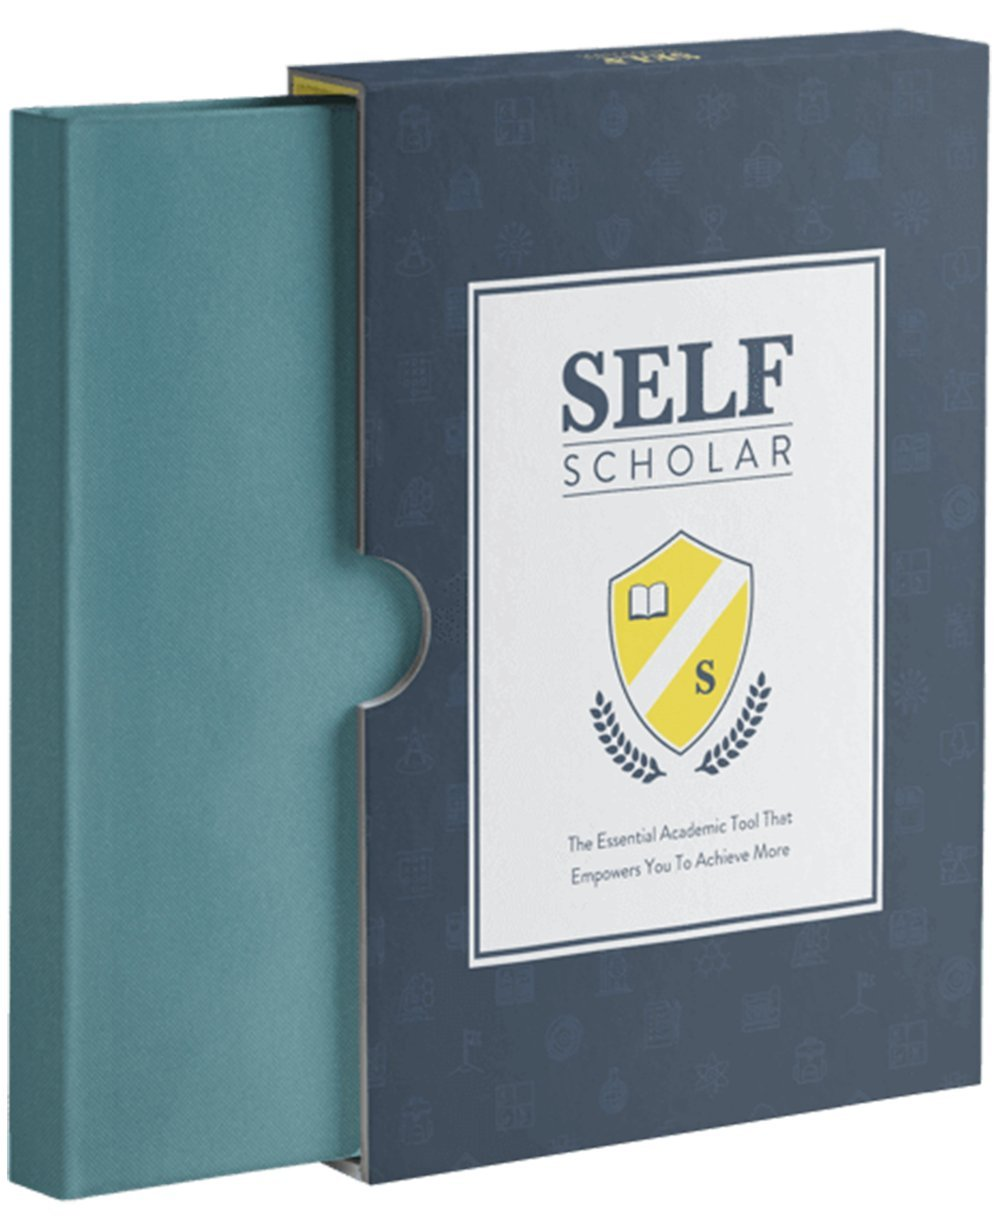 "Academic Journal - The BestSelf Co. Self Scholar (8.25"" X 5.5"") - Start Every Semester Organized - an Academic Set of Daily, Weekly and Monthly Goals - Three Spot-Saving Ribbons"